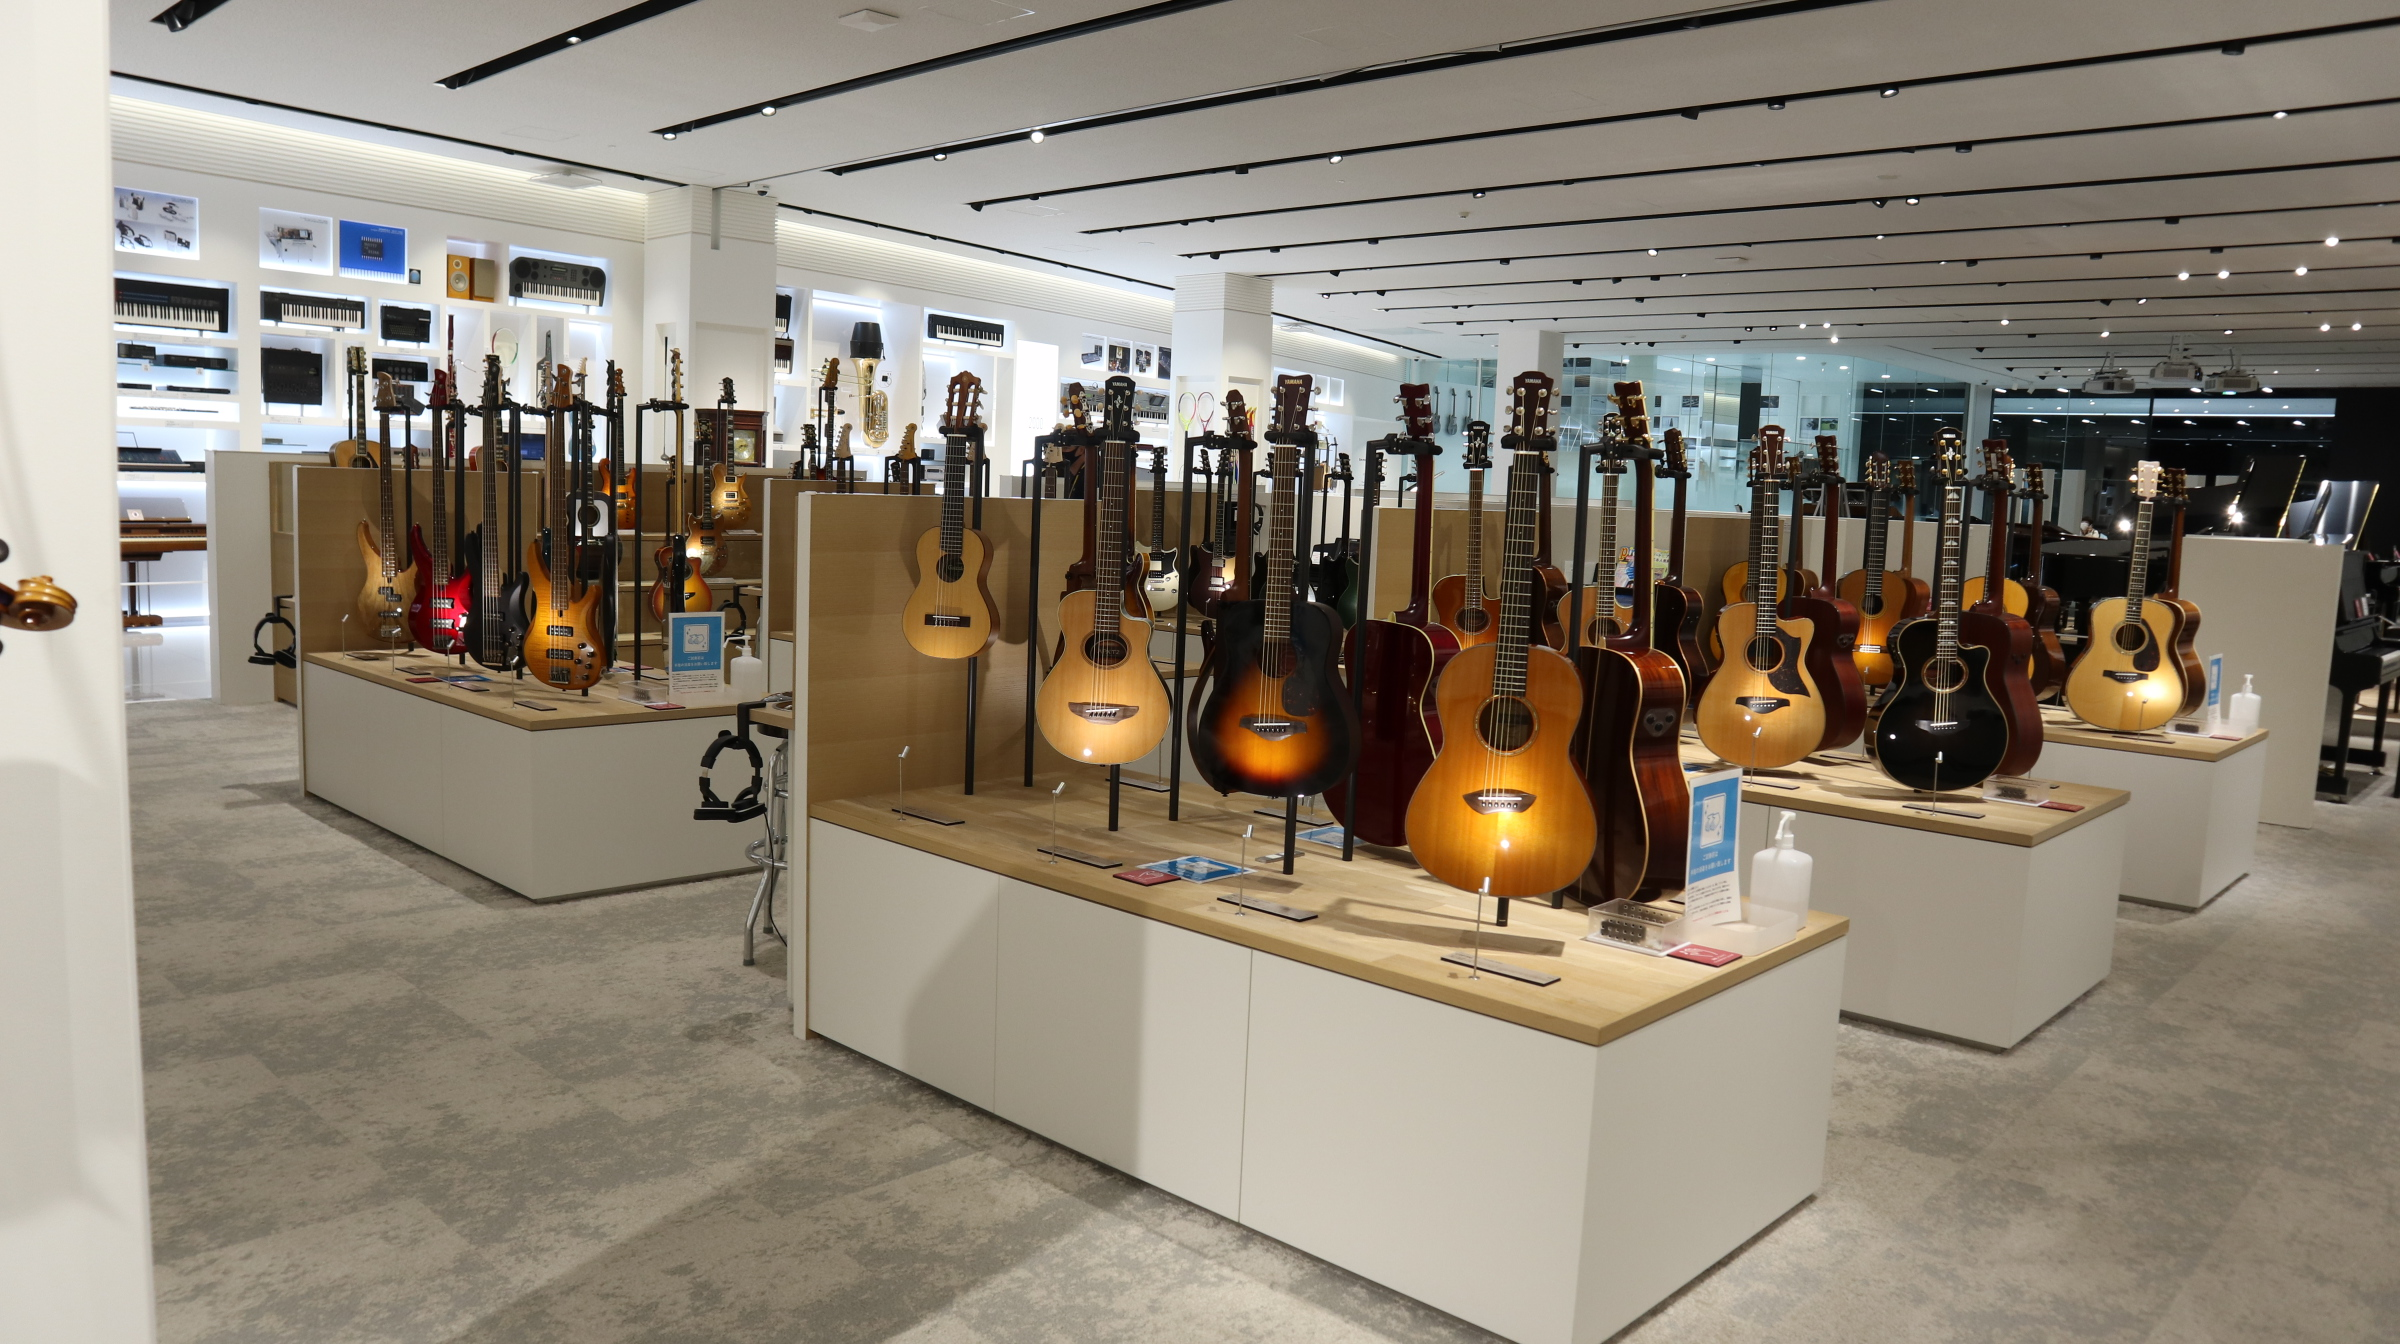 Yamaha acoustic guitars to try out